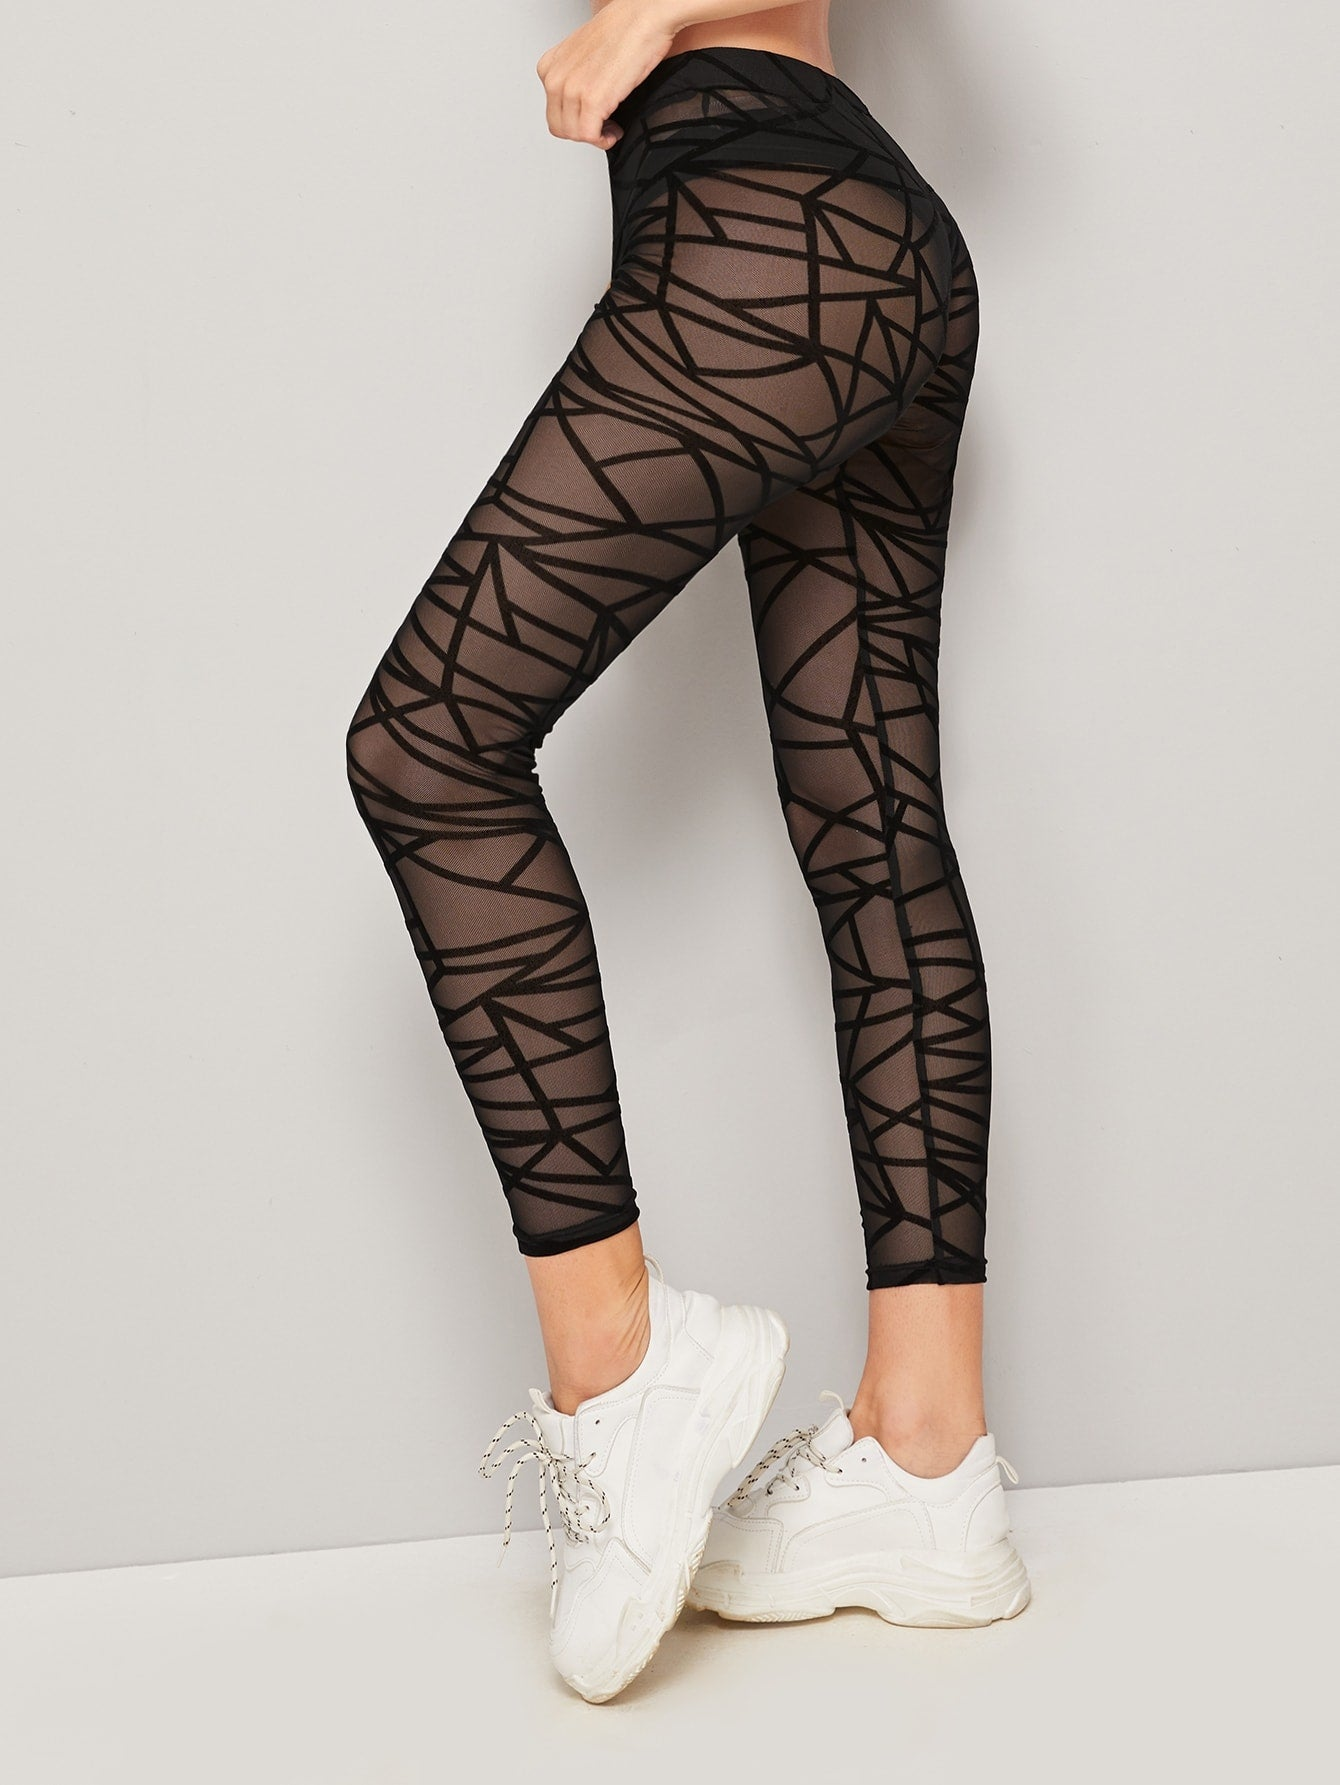 All Sheer Geo Legging